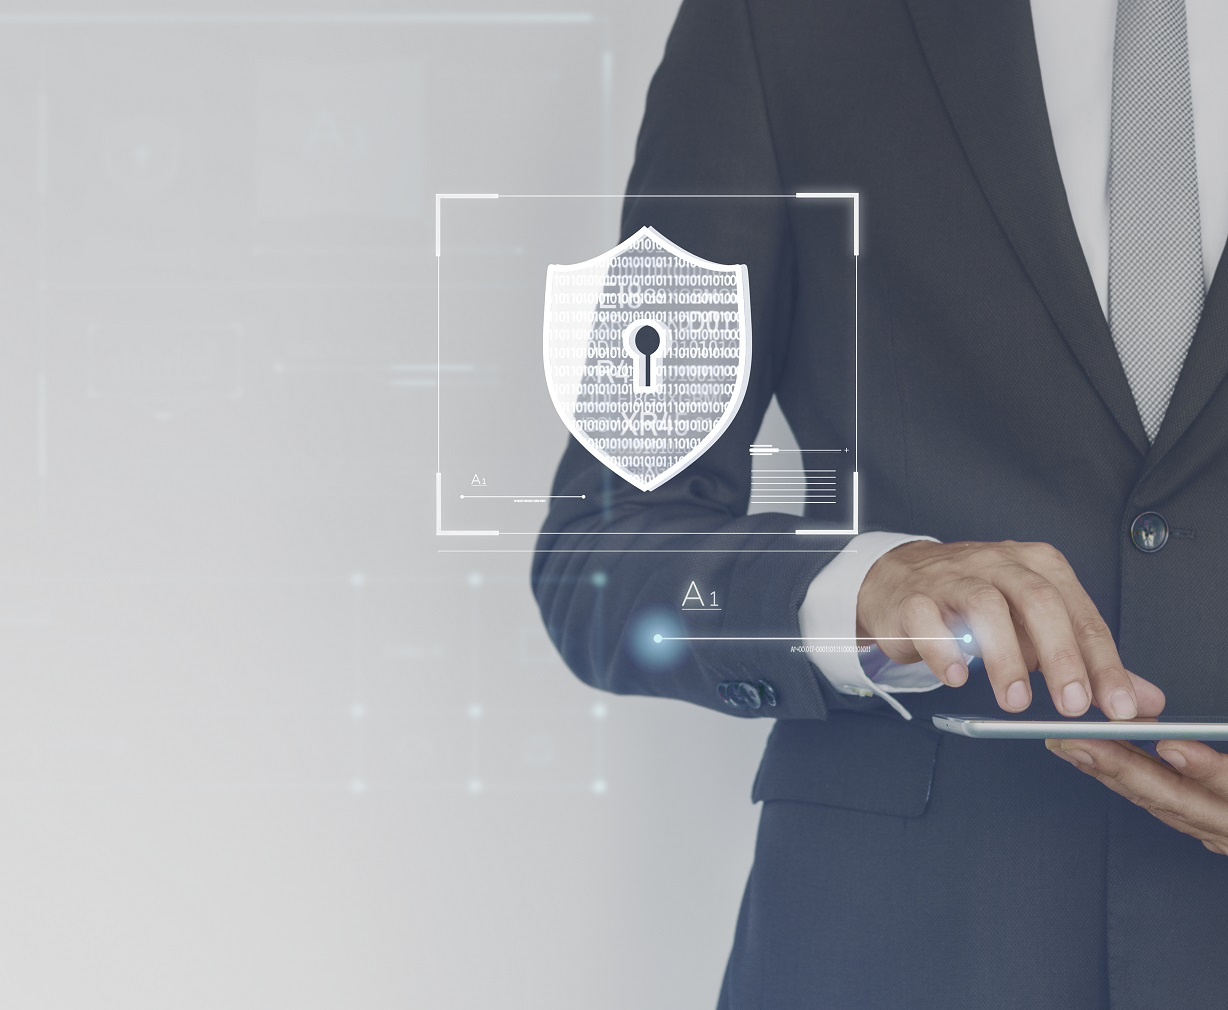 The rationale for tokenisation and PCI DSS compliance